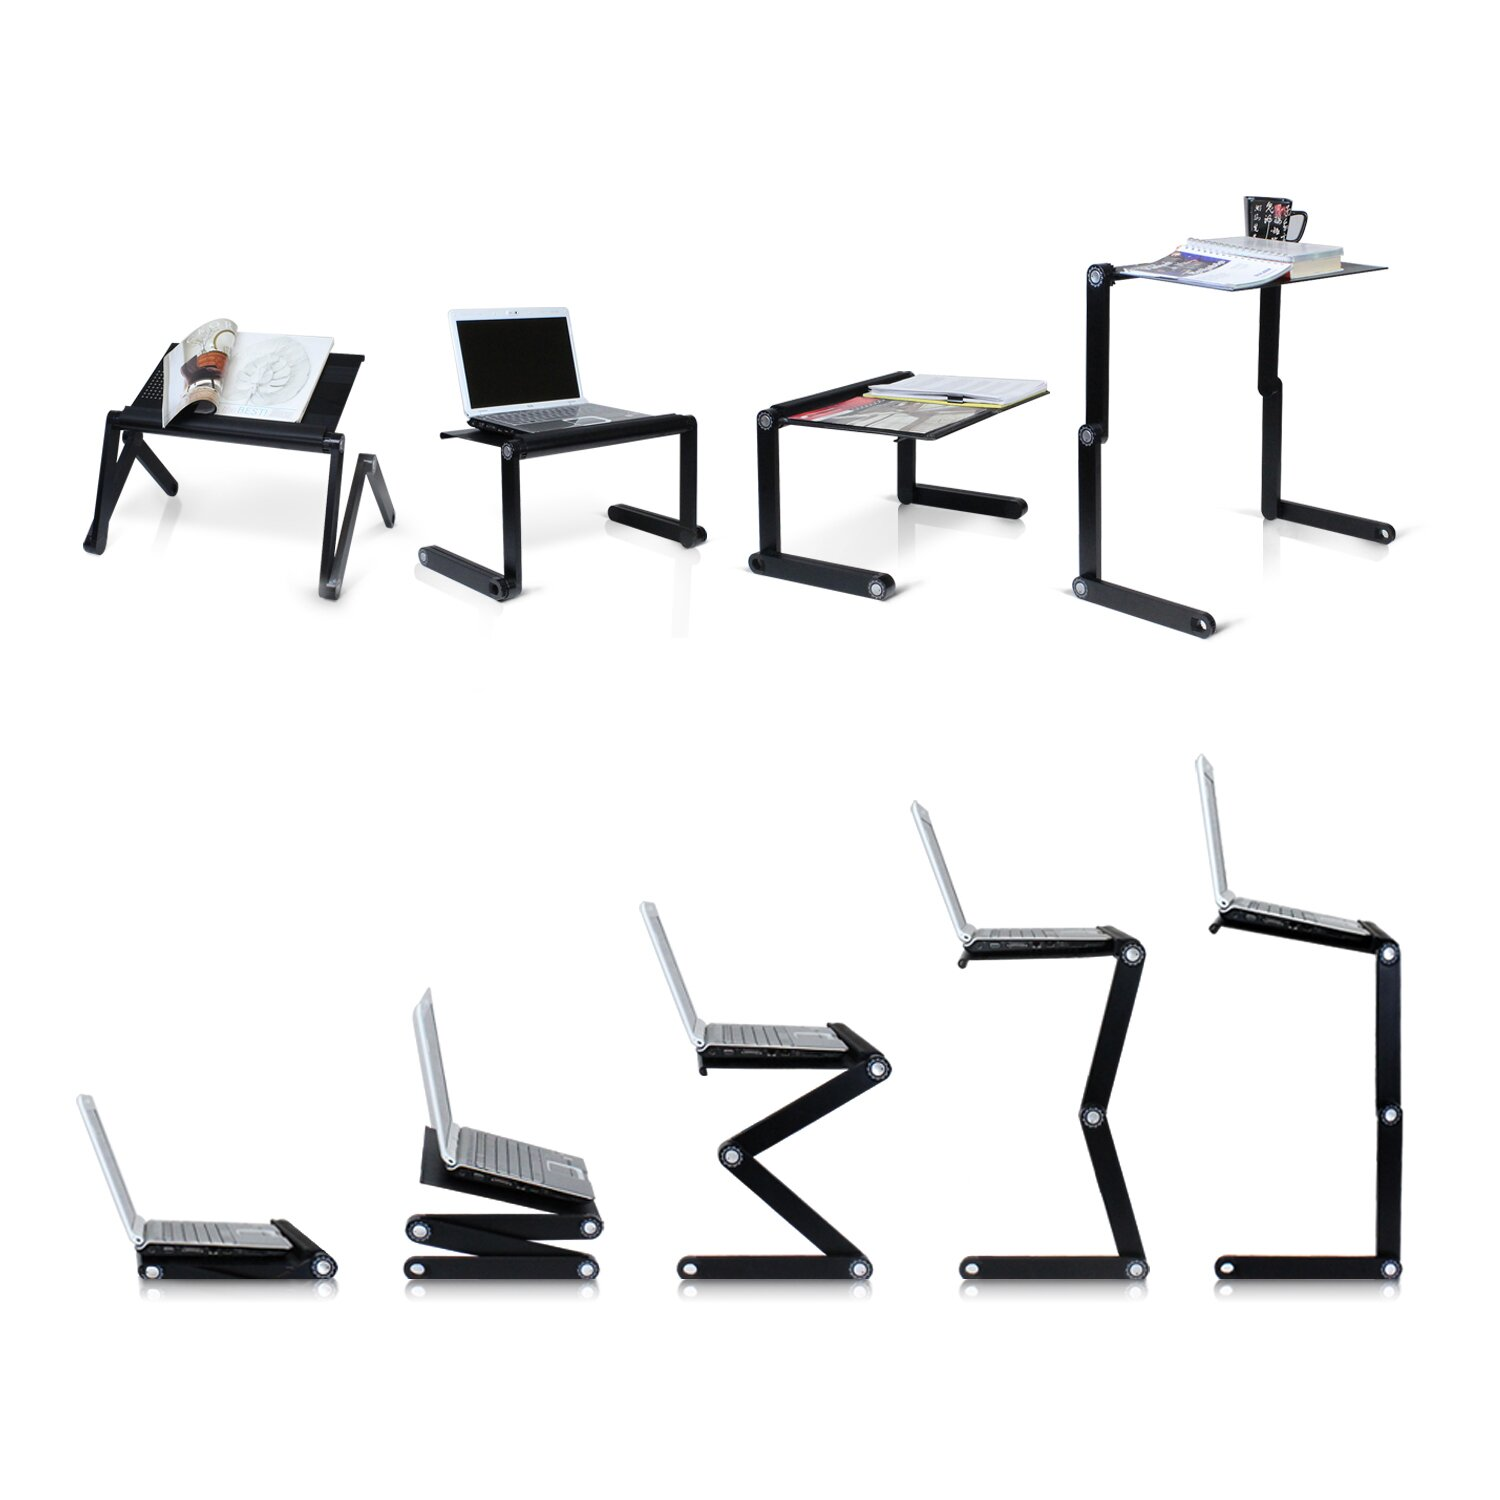 Laptop bed table tray - Vented Laptop Table Portable Bed Tray Book Stand